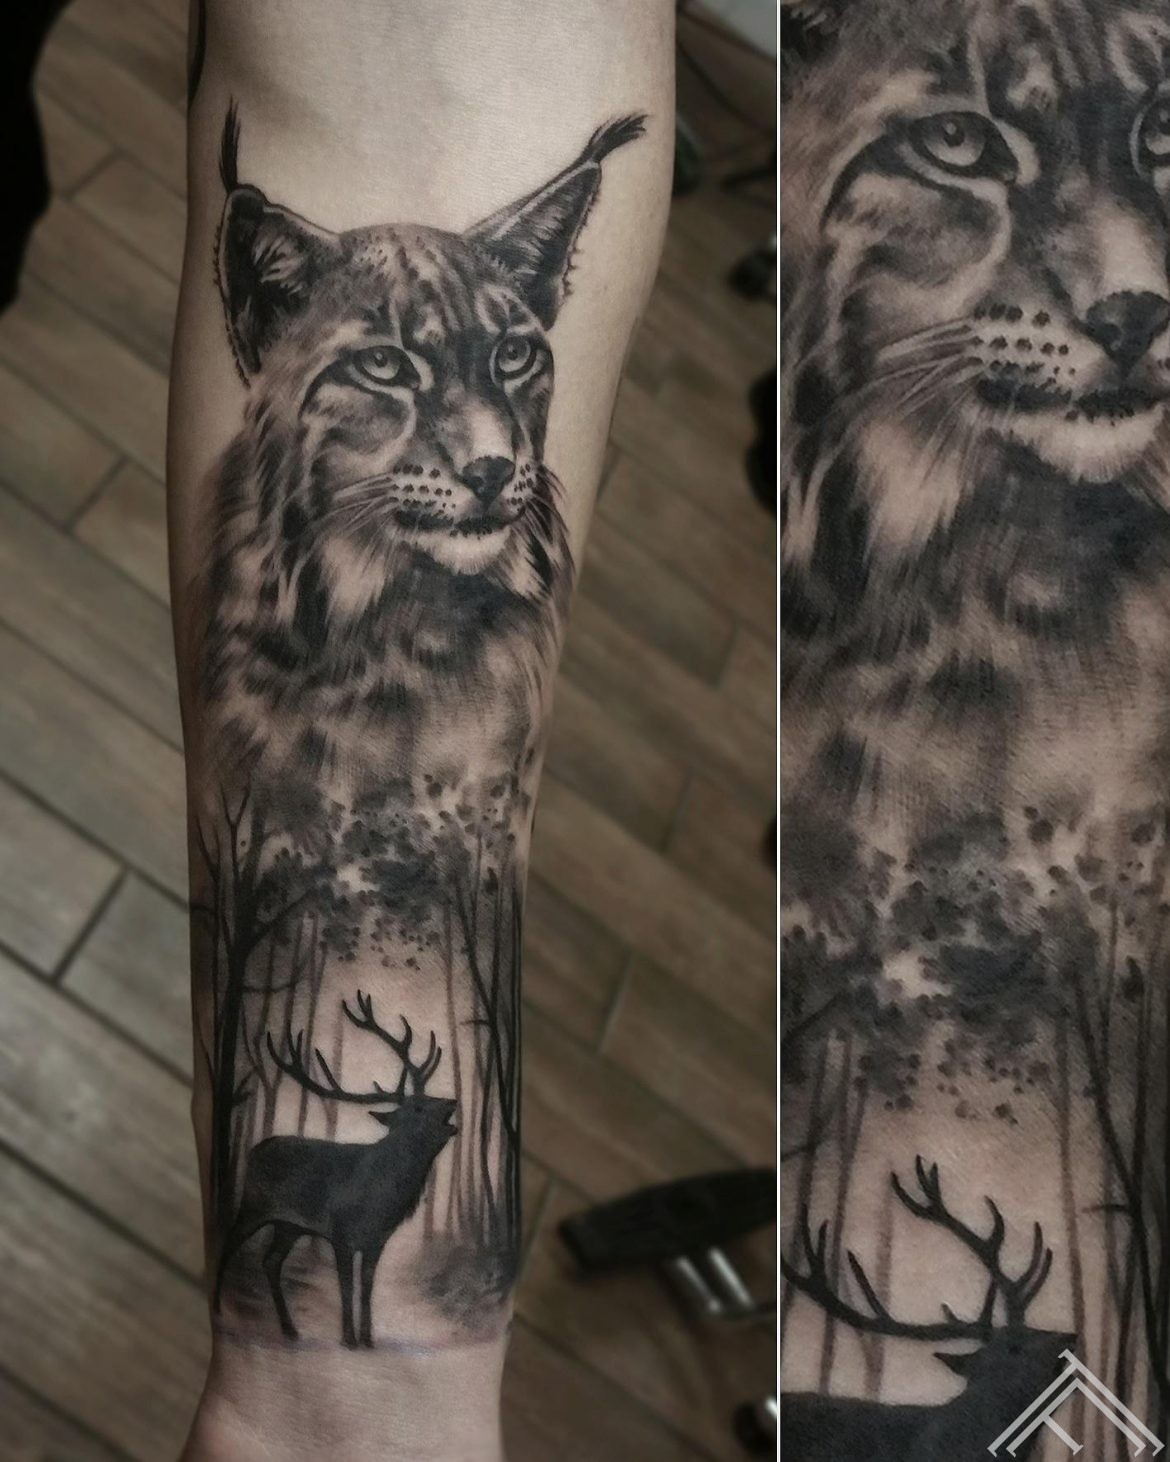 lusis-lynx-cat-kakis-briedis-tattoofrequency-forest-mezs-riga-tattoo-tetovejums-janissvars